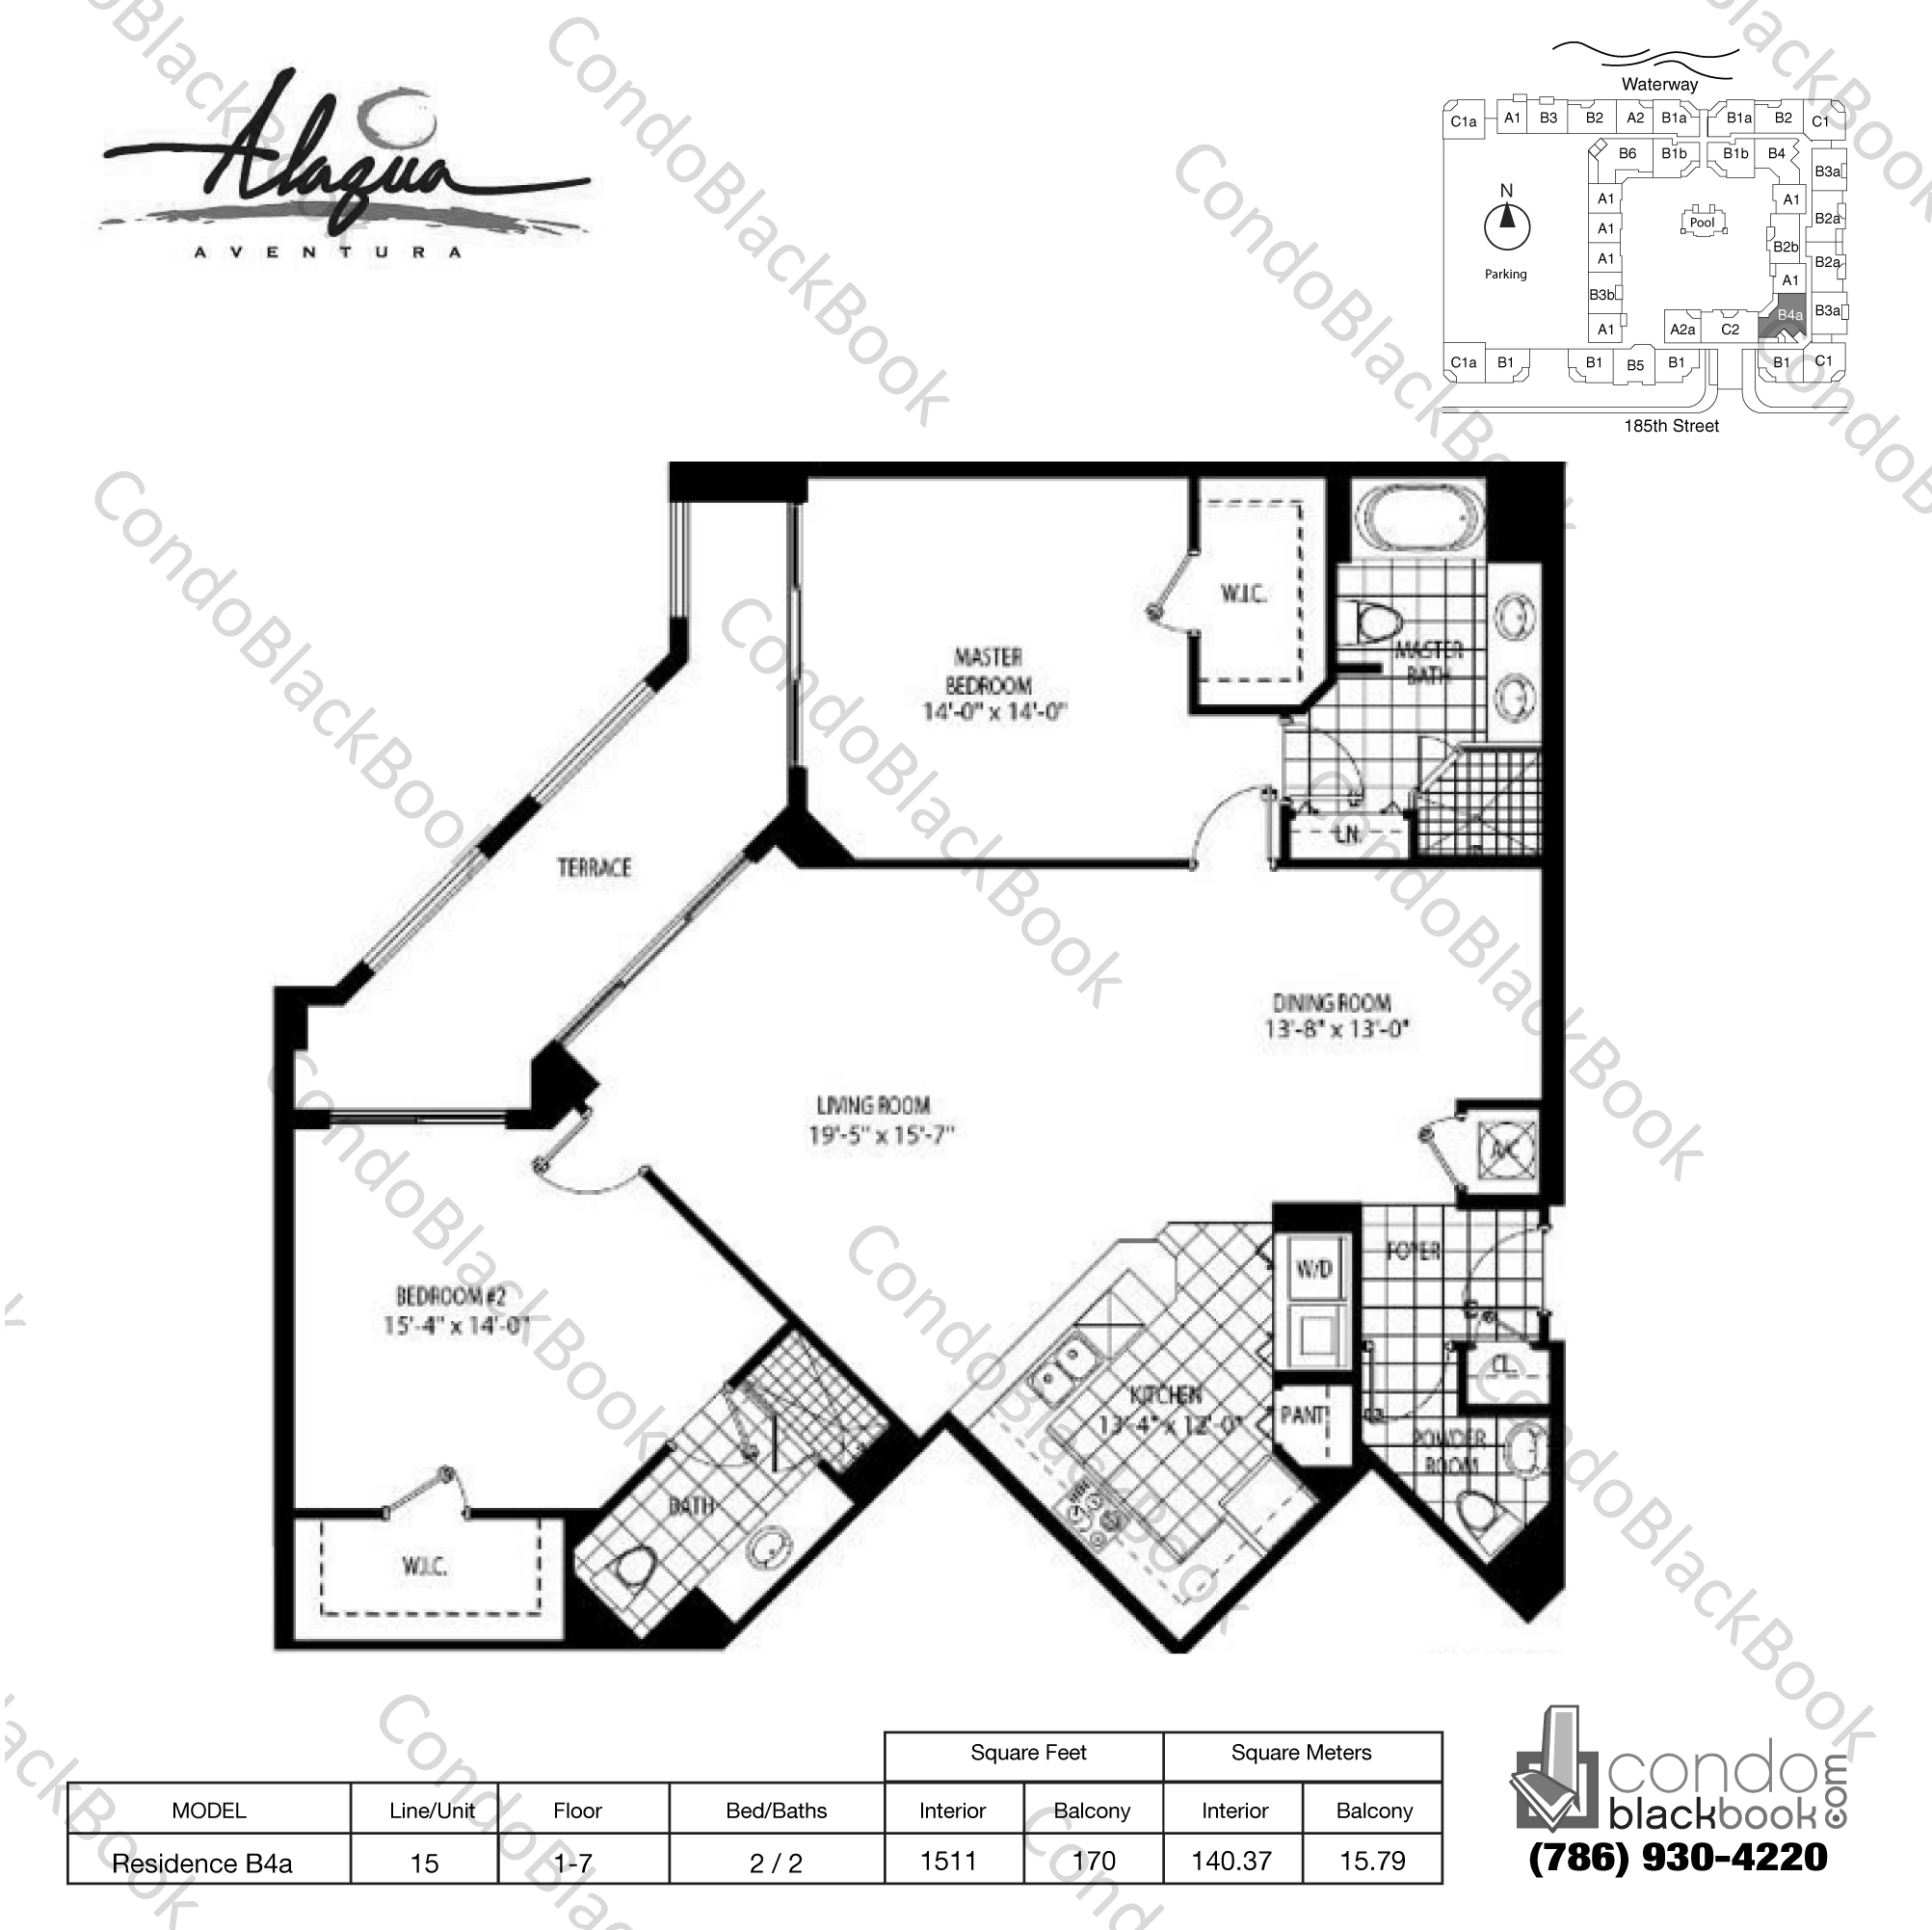 Floor plan for Alaqua Aventura, model Residence B4a, line 15, 2 / 2 bedrooms, 1511 sq ft